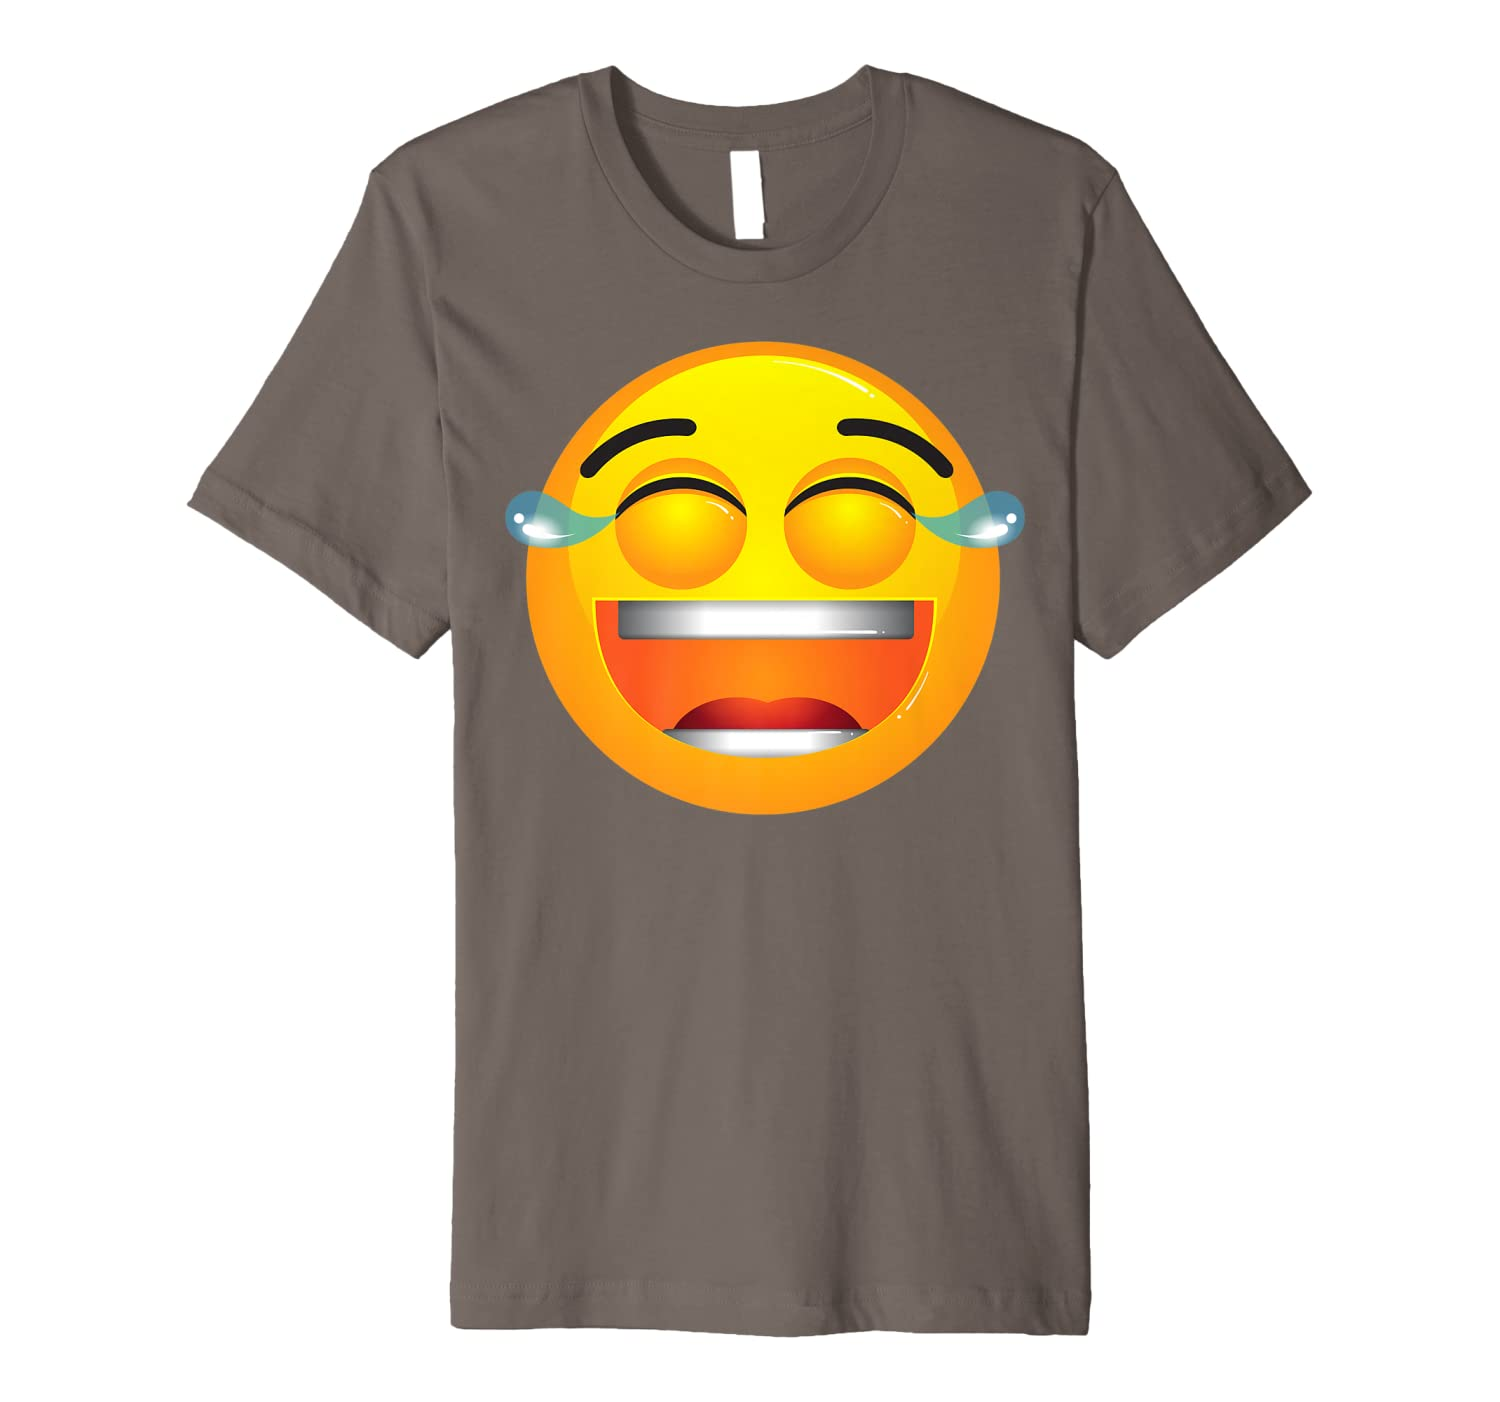 Laughing Tears Emojis Shirt | Cute Happy Laugh Face Tee Gift